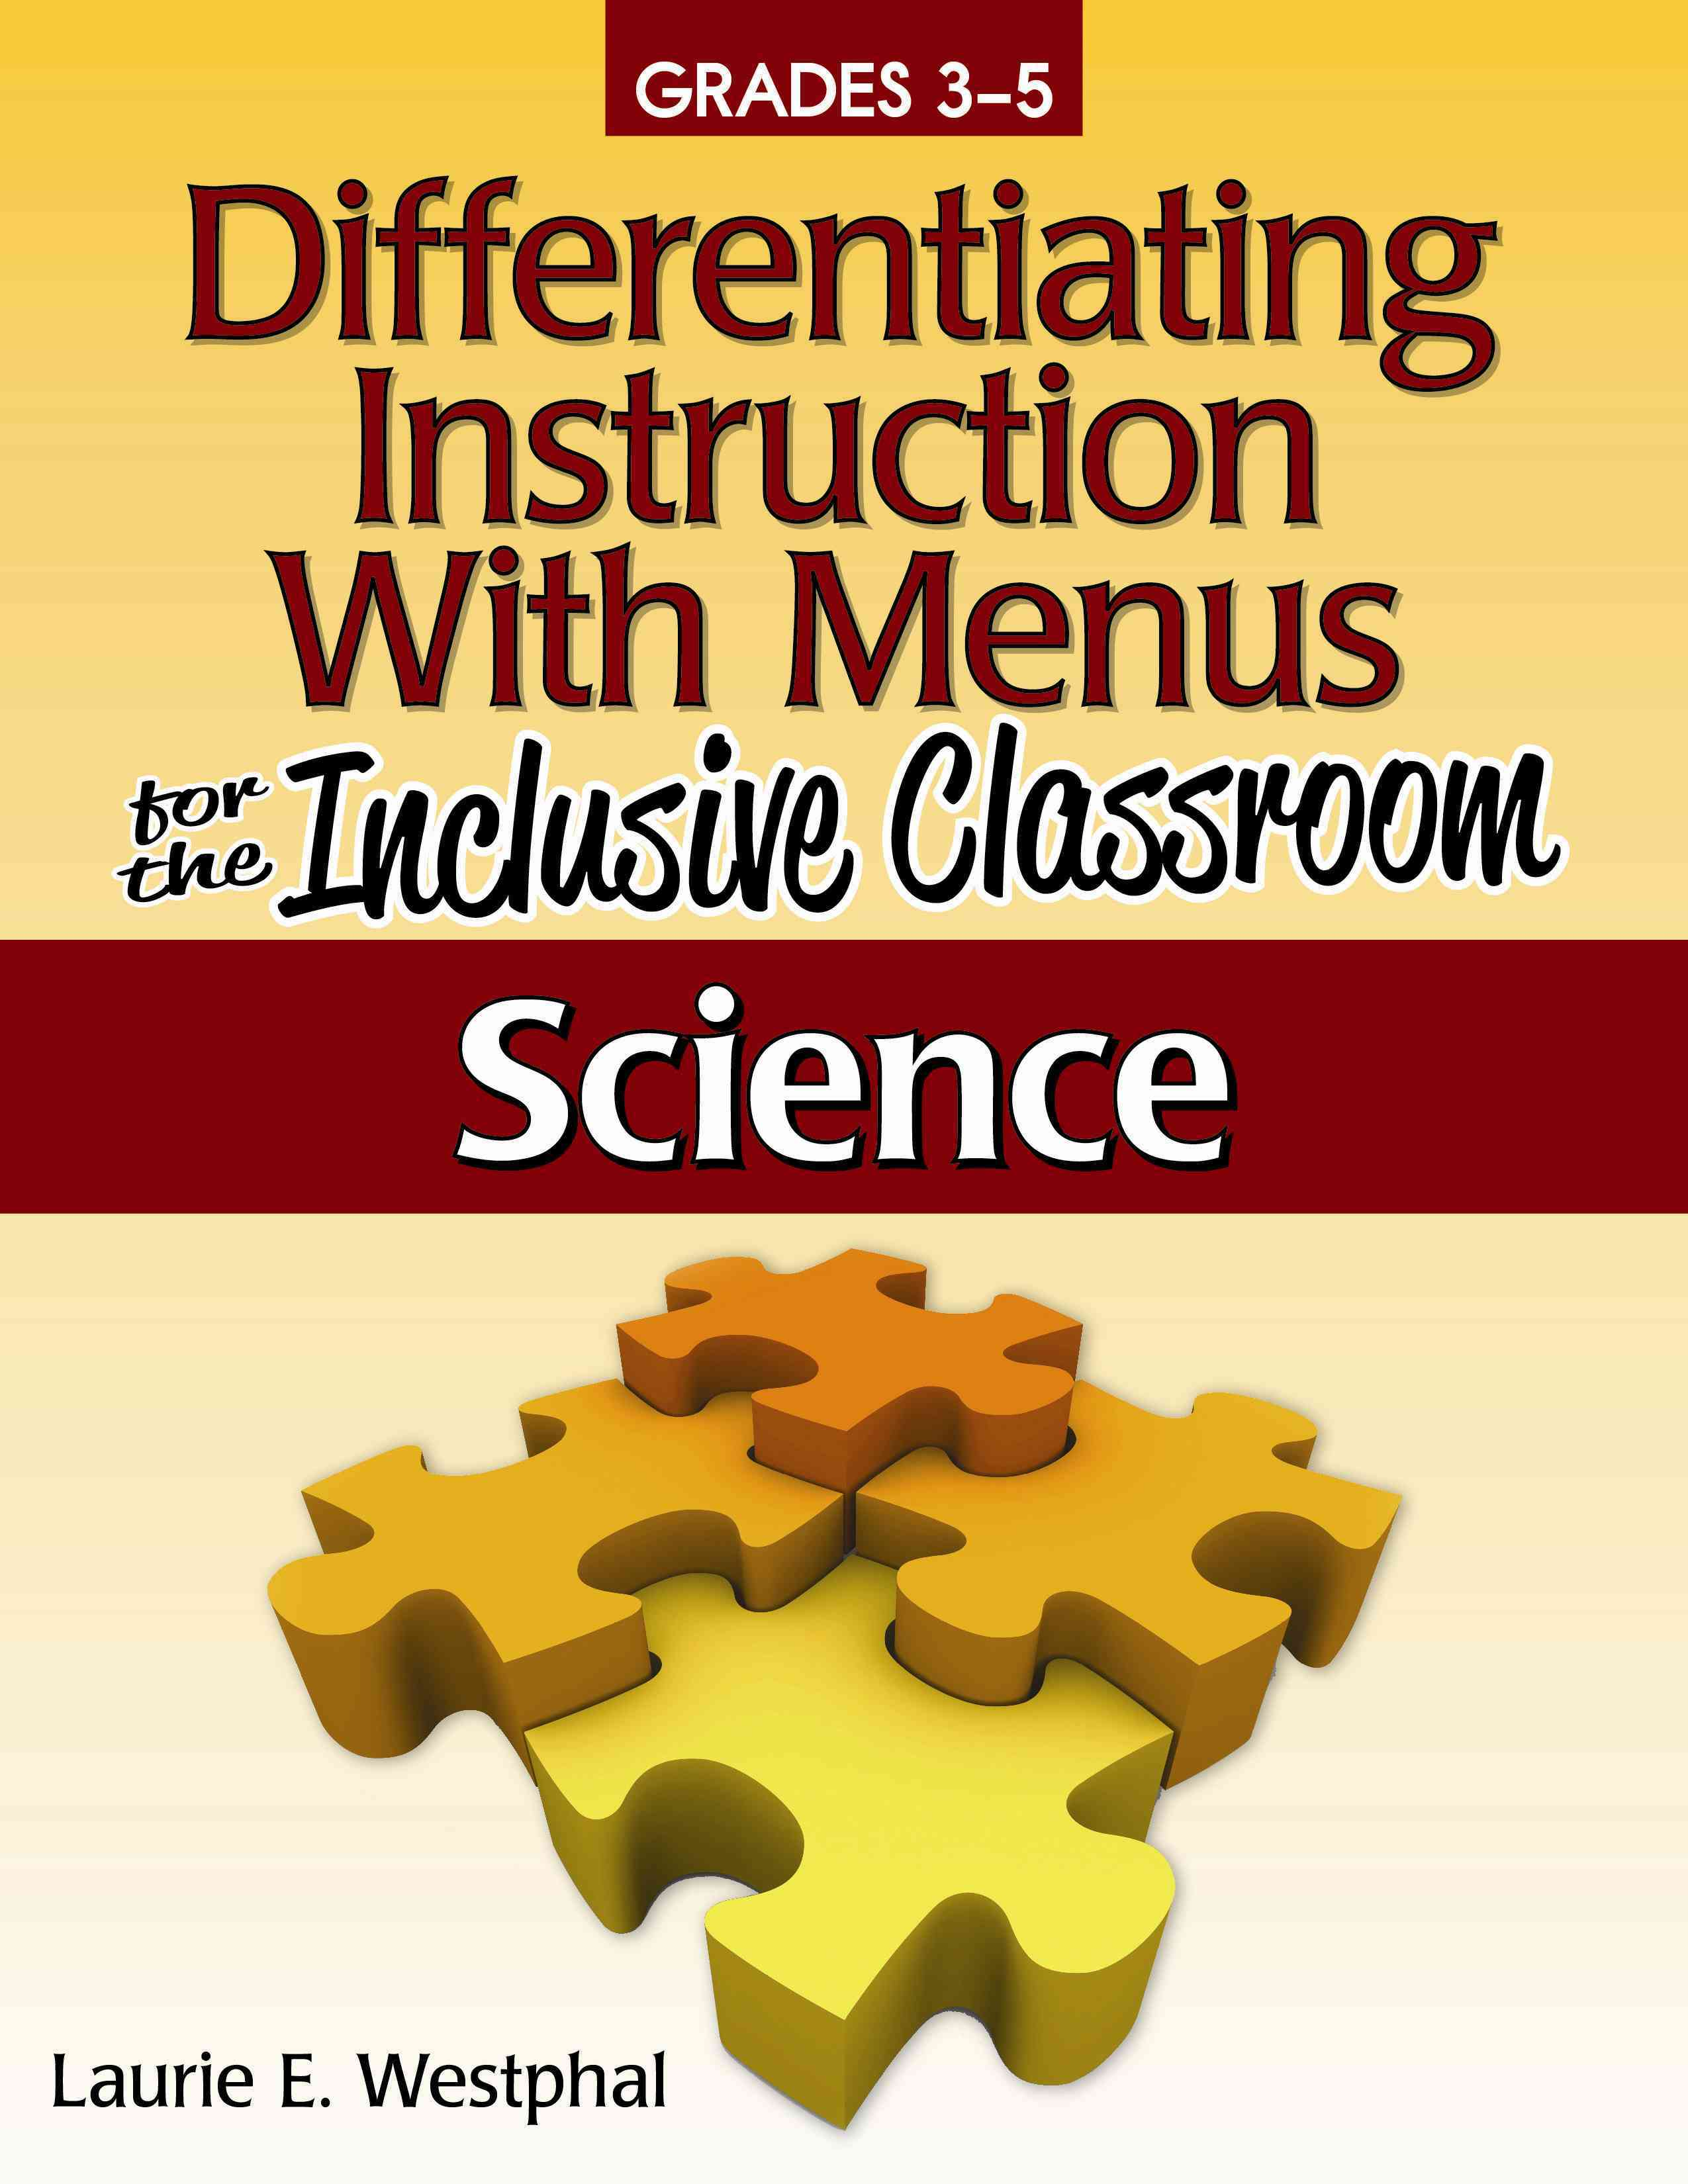 Differentiating Instruction With Menus for the Inclusive Classroom: Science: Lower & On-Level Menus Grades 3-5 (Paperback)